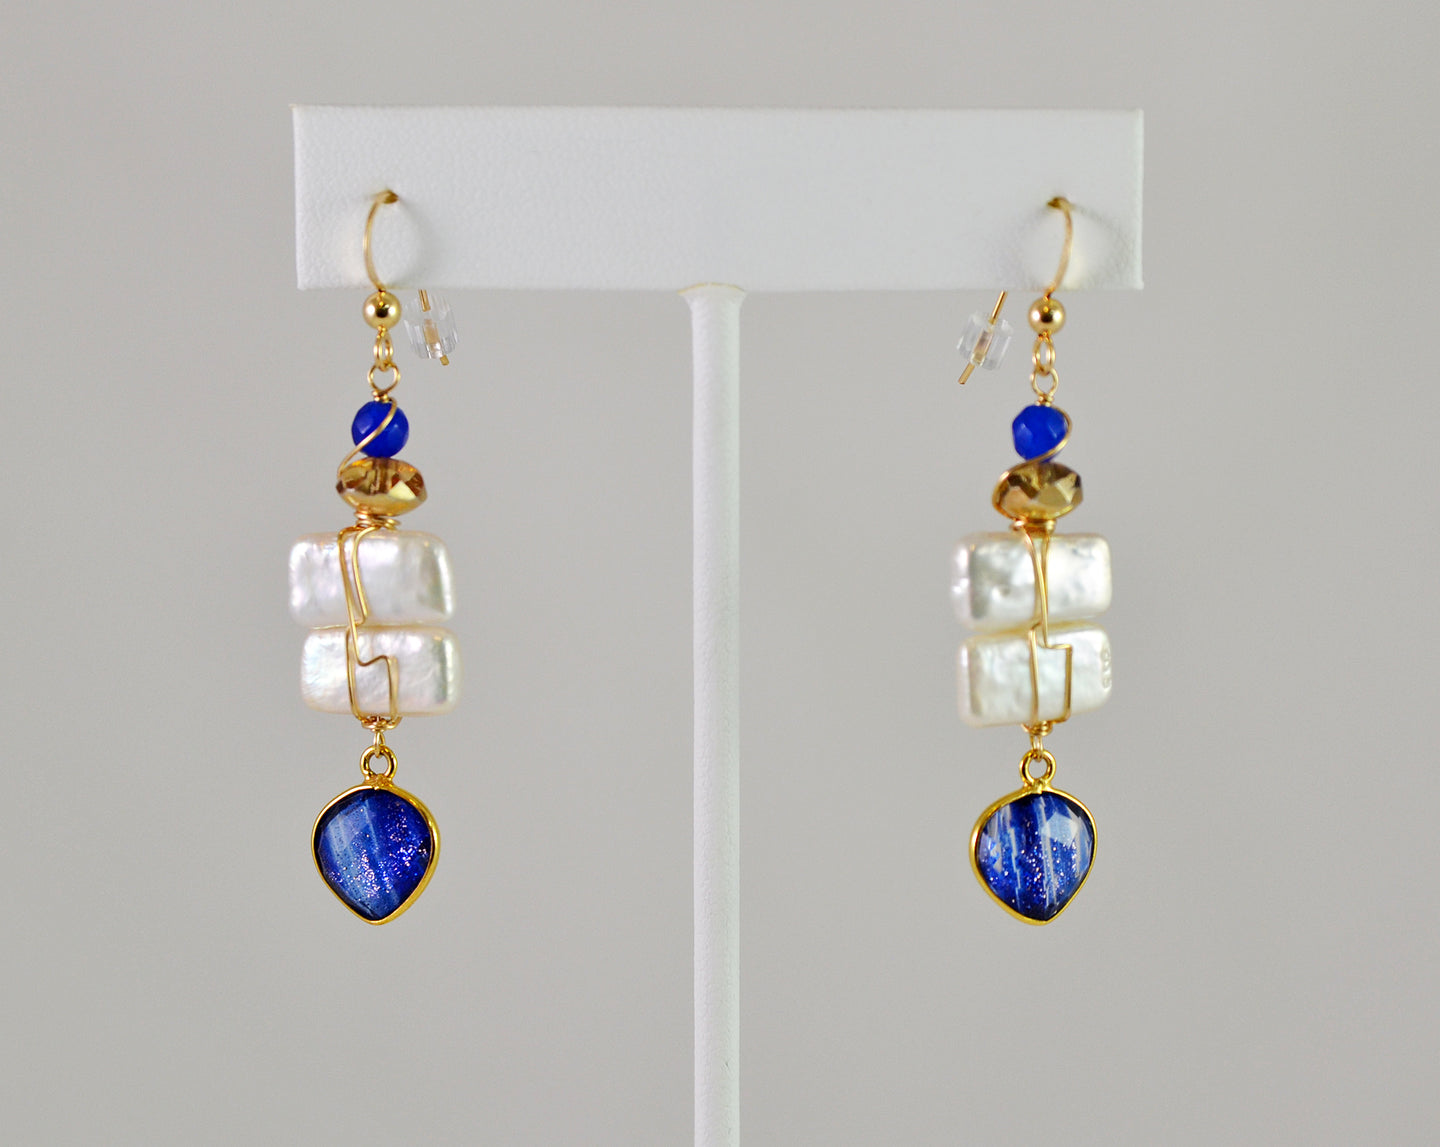 Pearl and Bezeled Gem Earrings by Anna Balkan